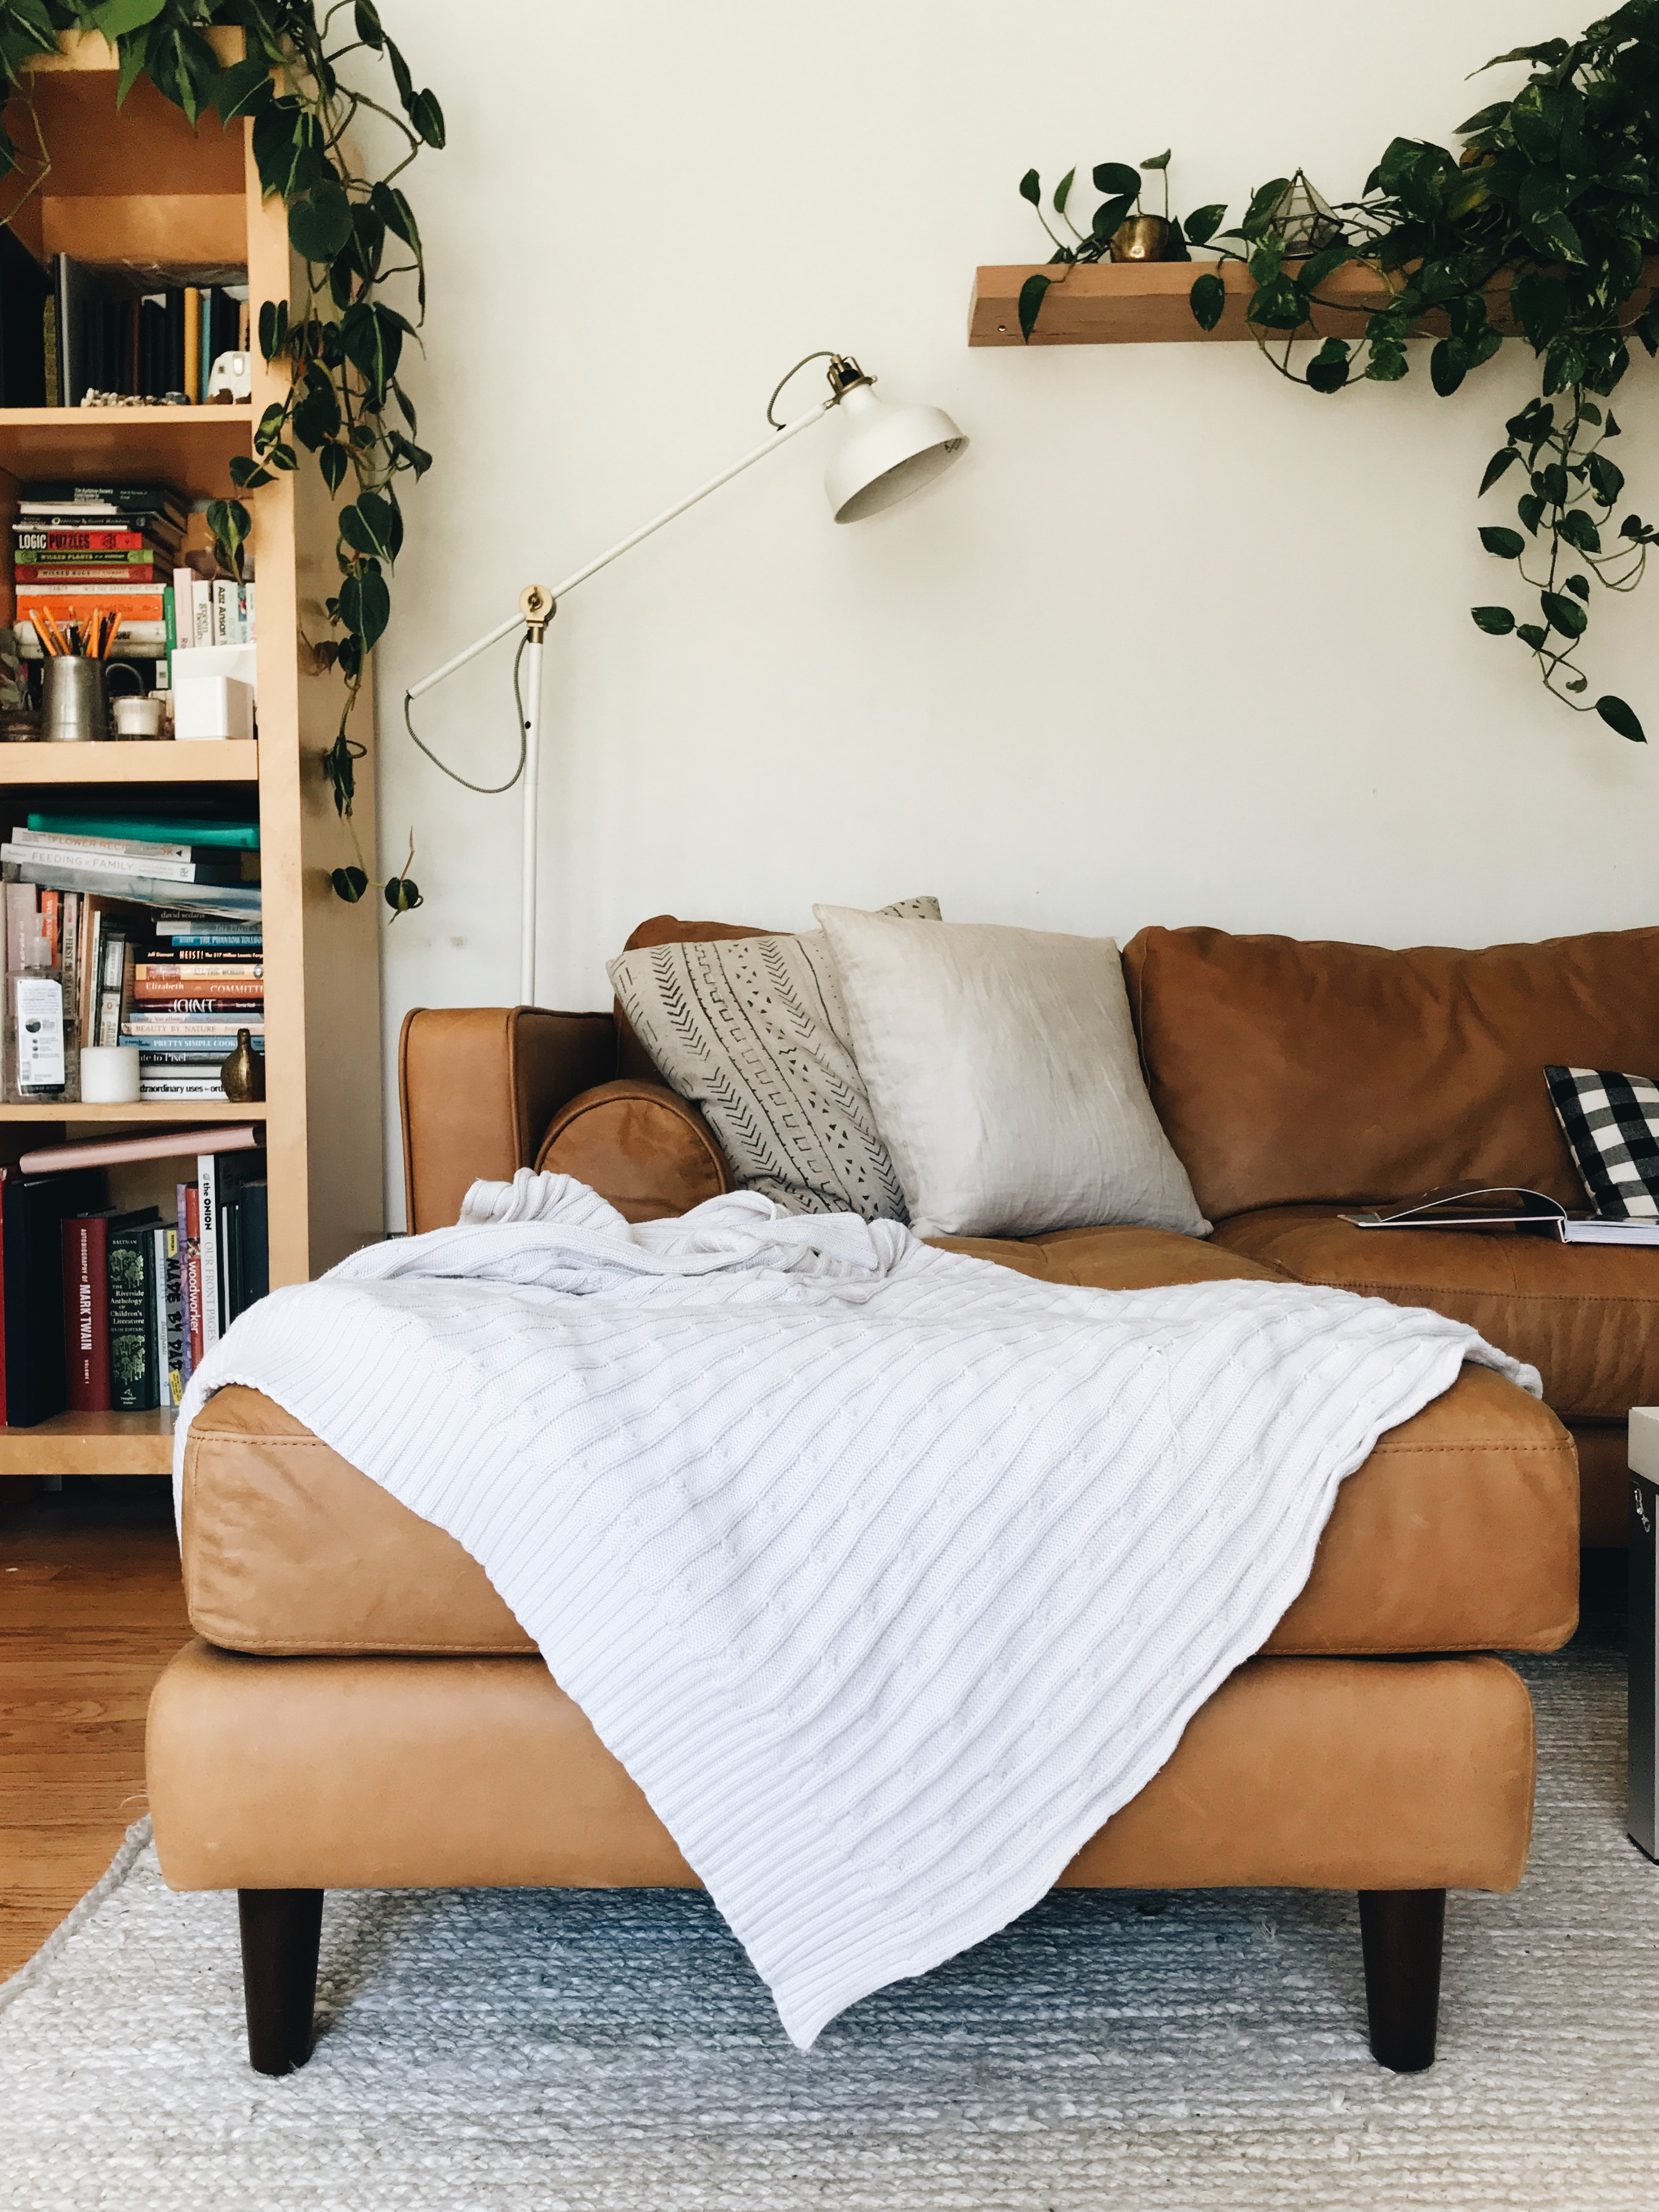 Sofas And Stuff Reviews Article Sofas Win At Living Rooms And Life And Everything Bev Cooks